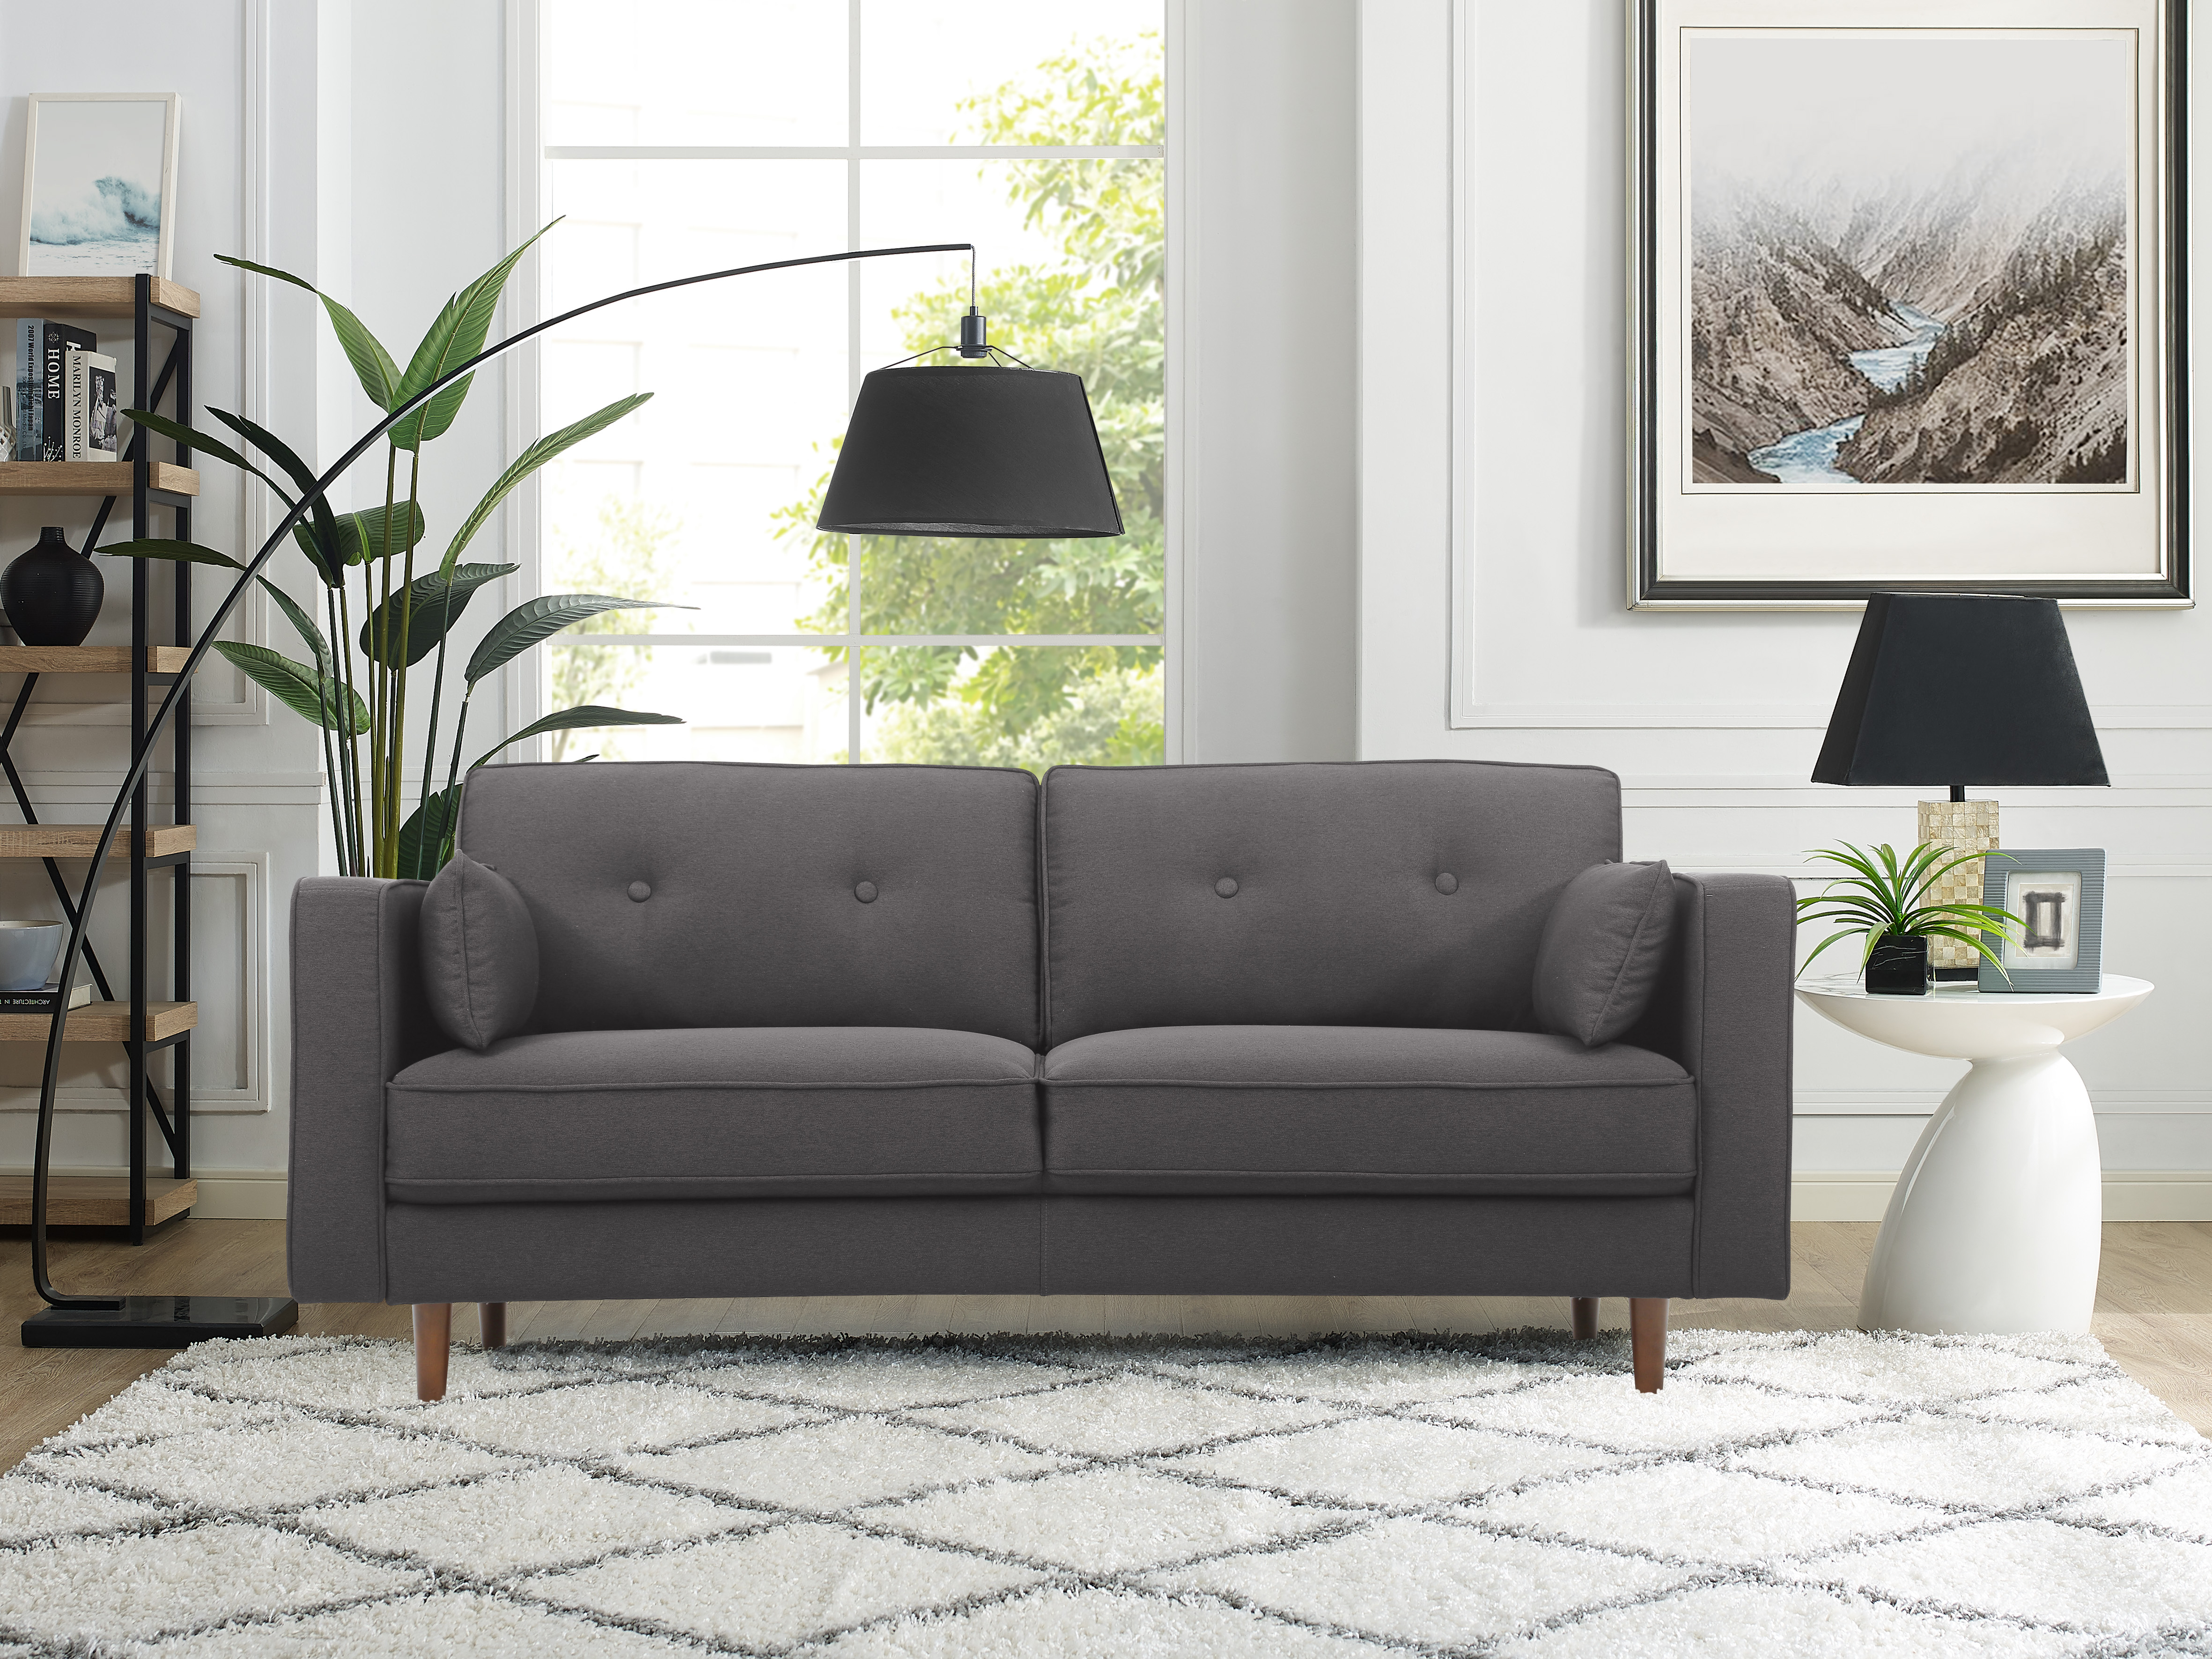 Sofa Tax Japan Lifestyle Solutions Tanany Mid Century Modern Design Upholstery Fabric Sofa Heather Grey